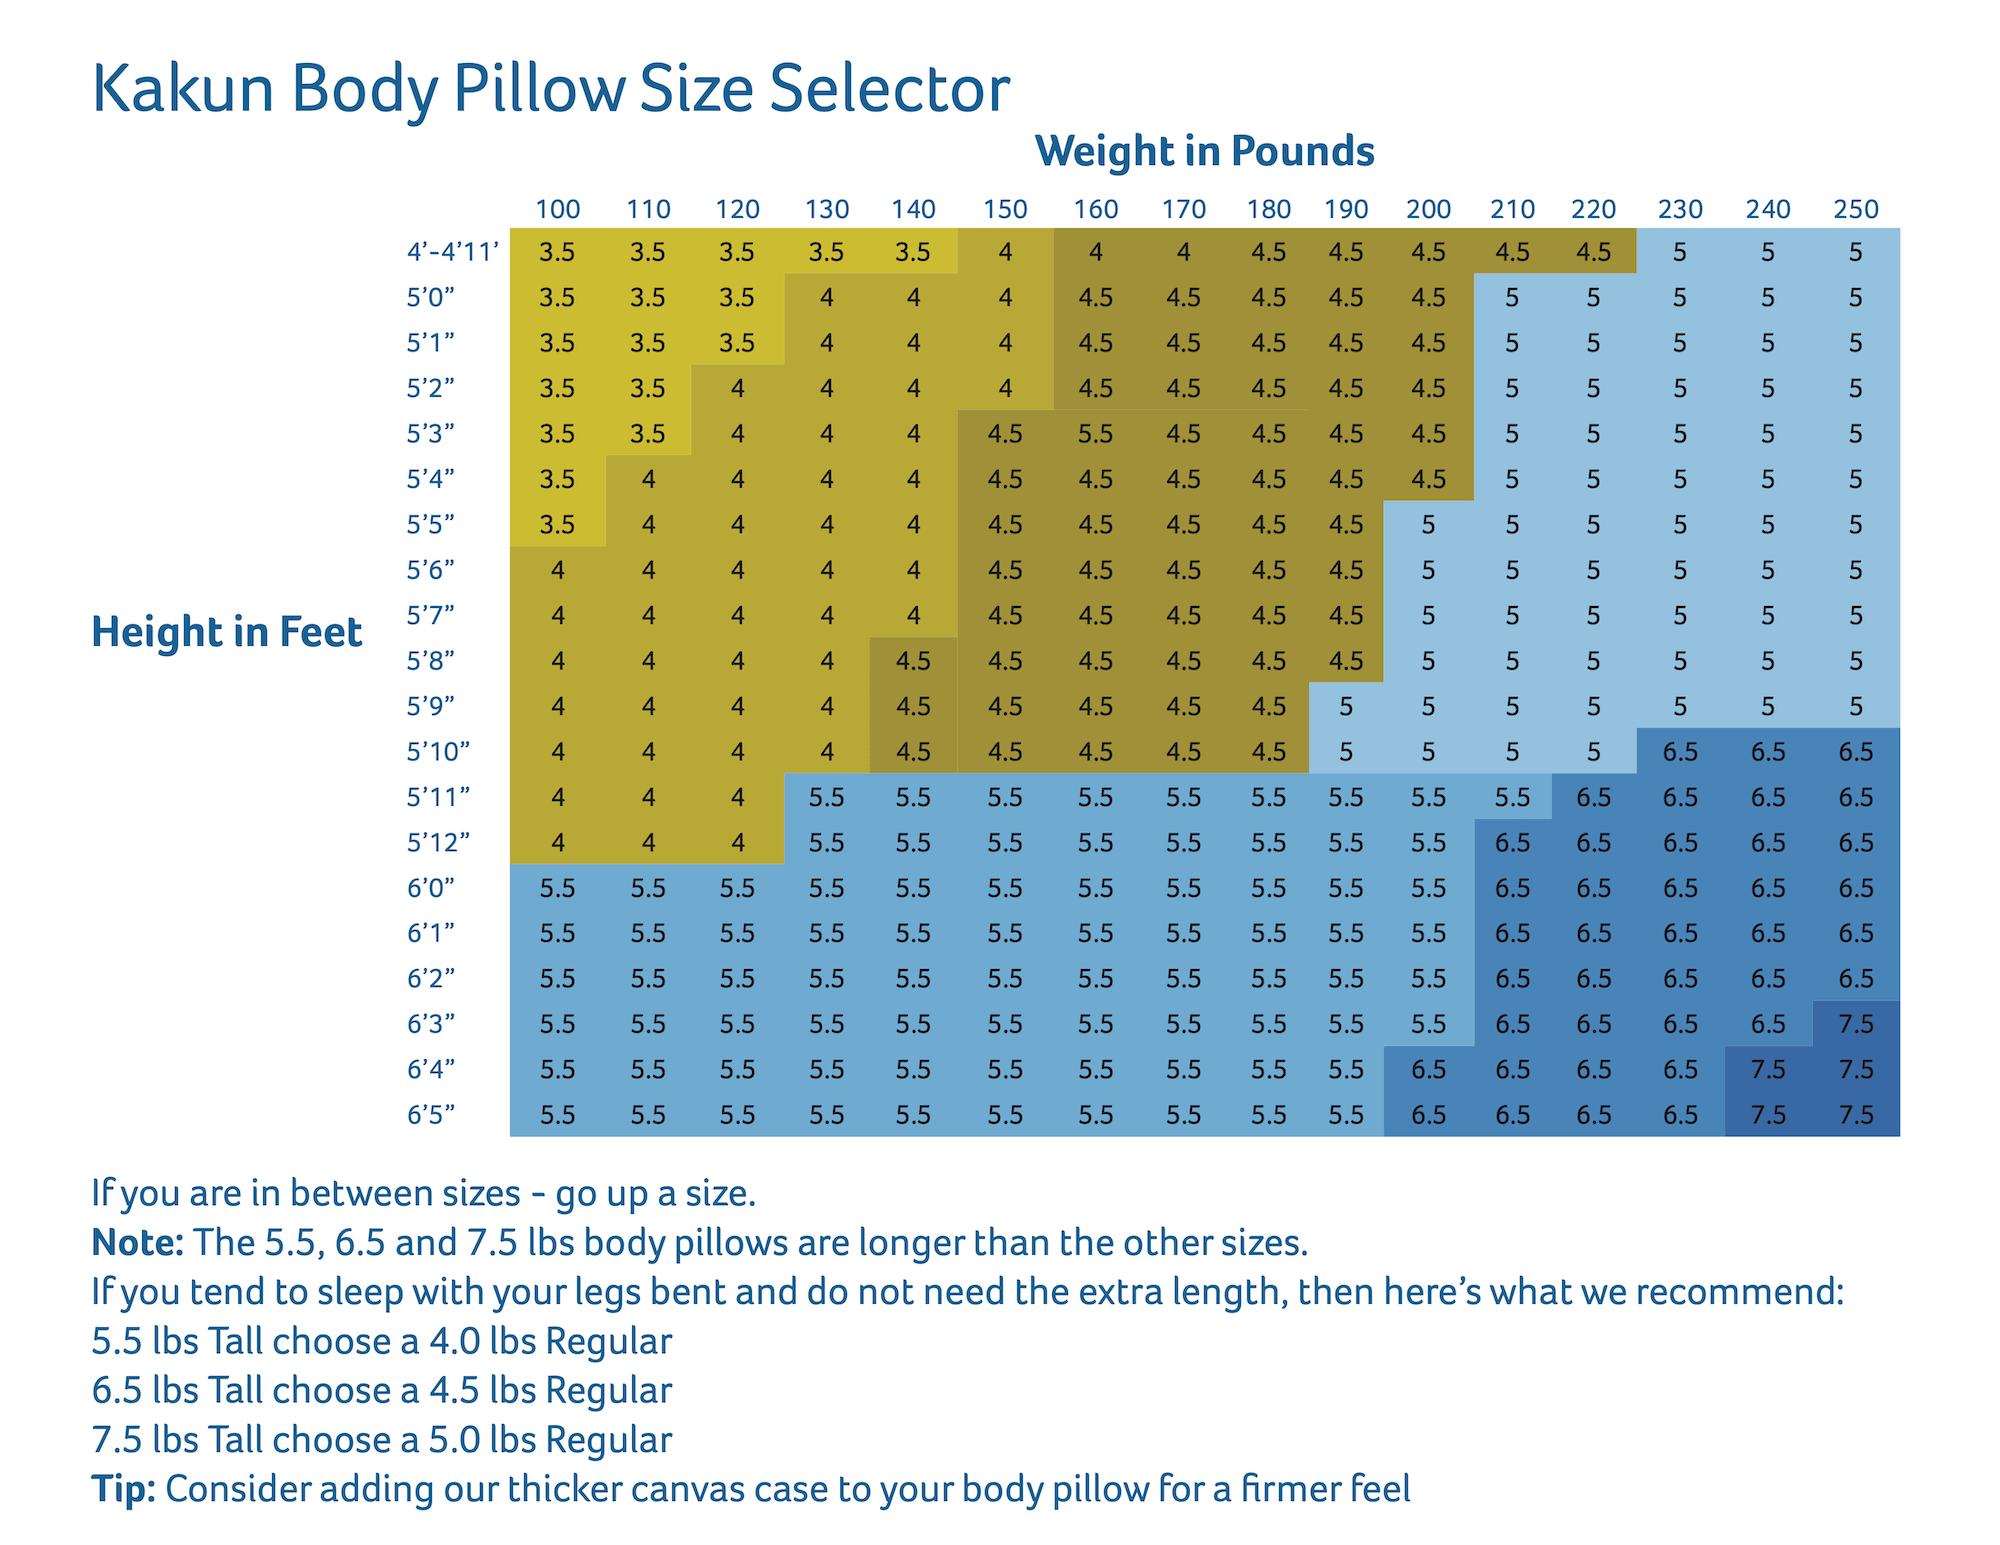 Body Pillow Size Selector Chart